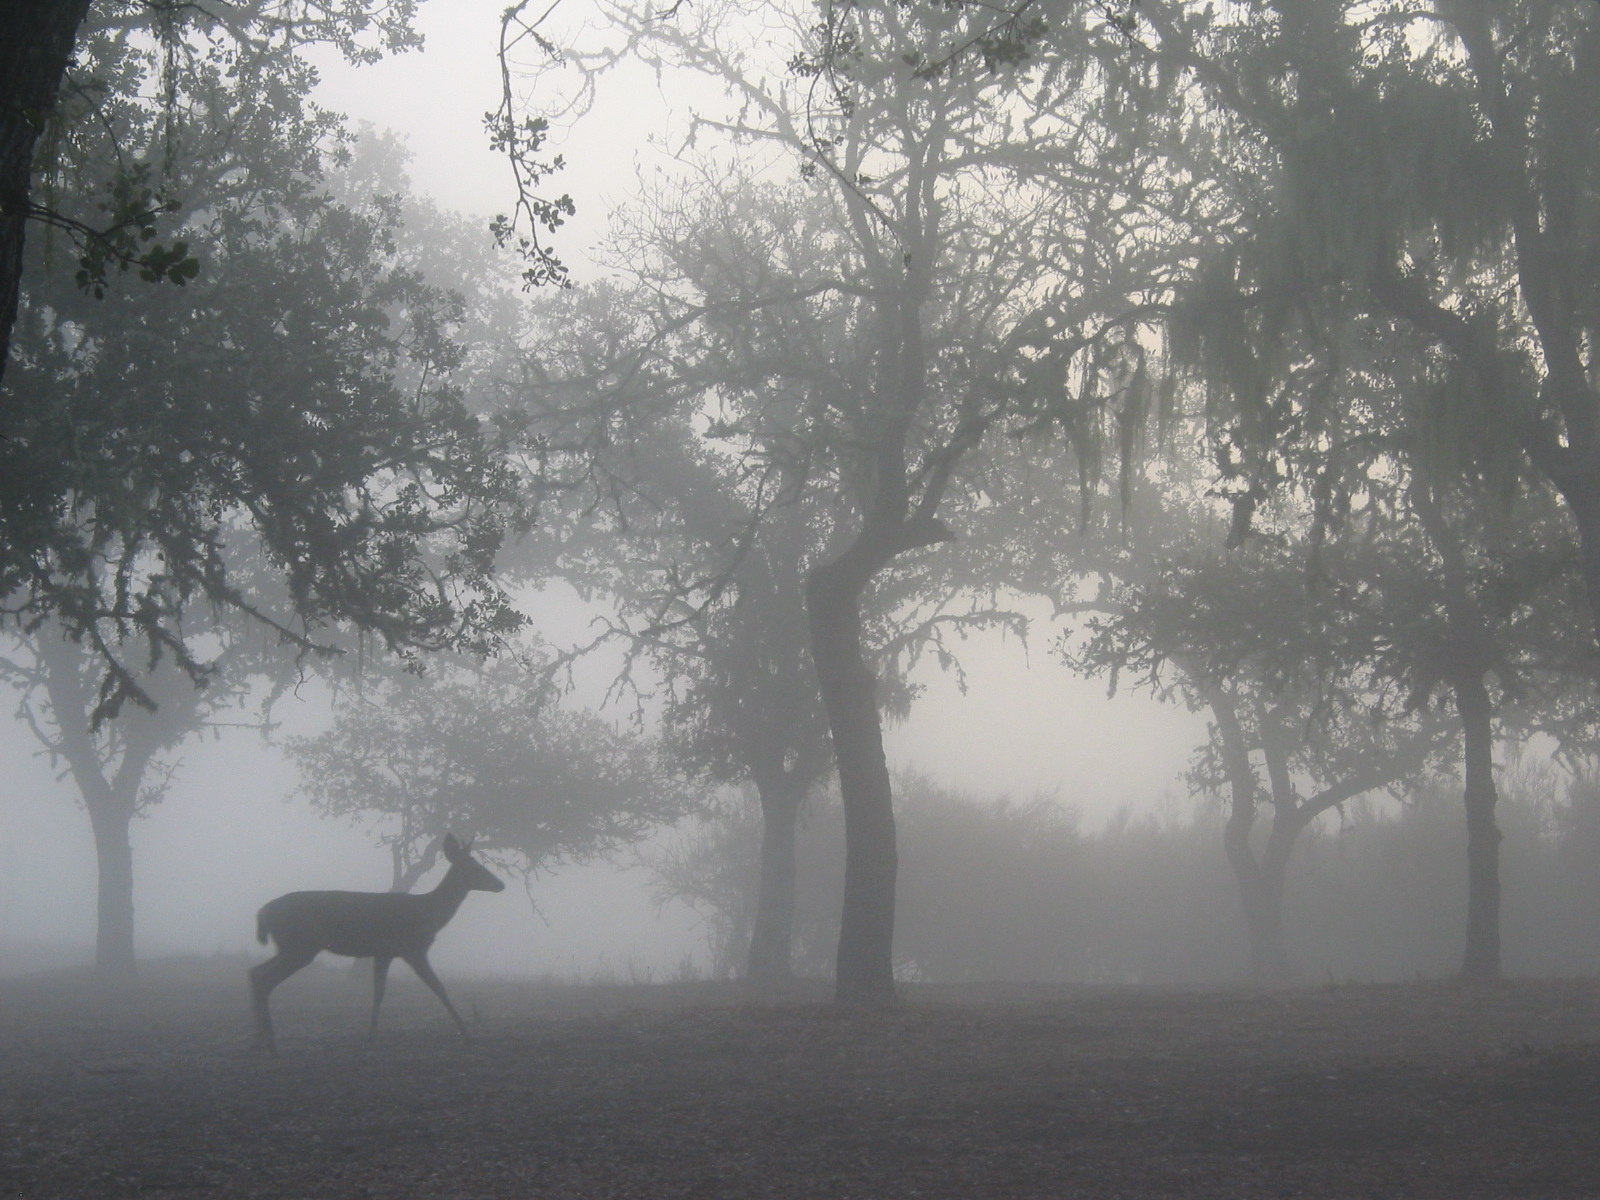 Click image for larger version  Name:Deer in the mist.JPG Views:64 Size:519.3 KB ID:48142